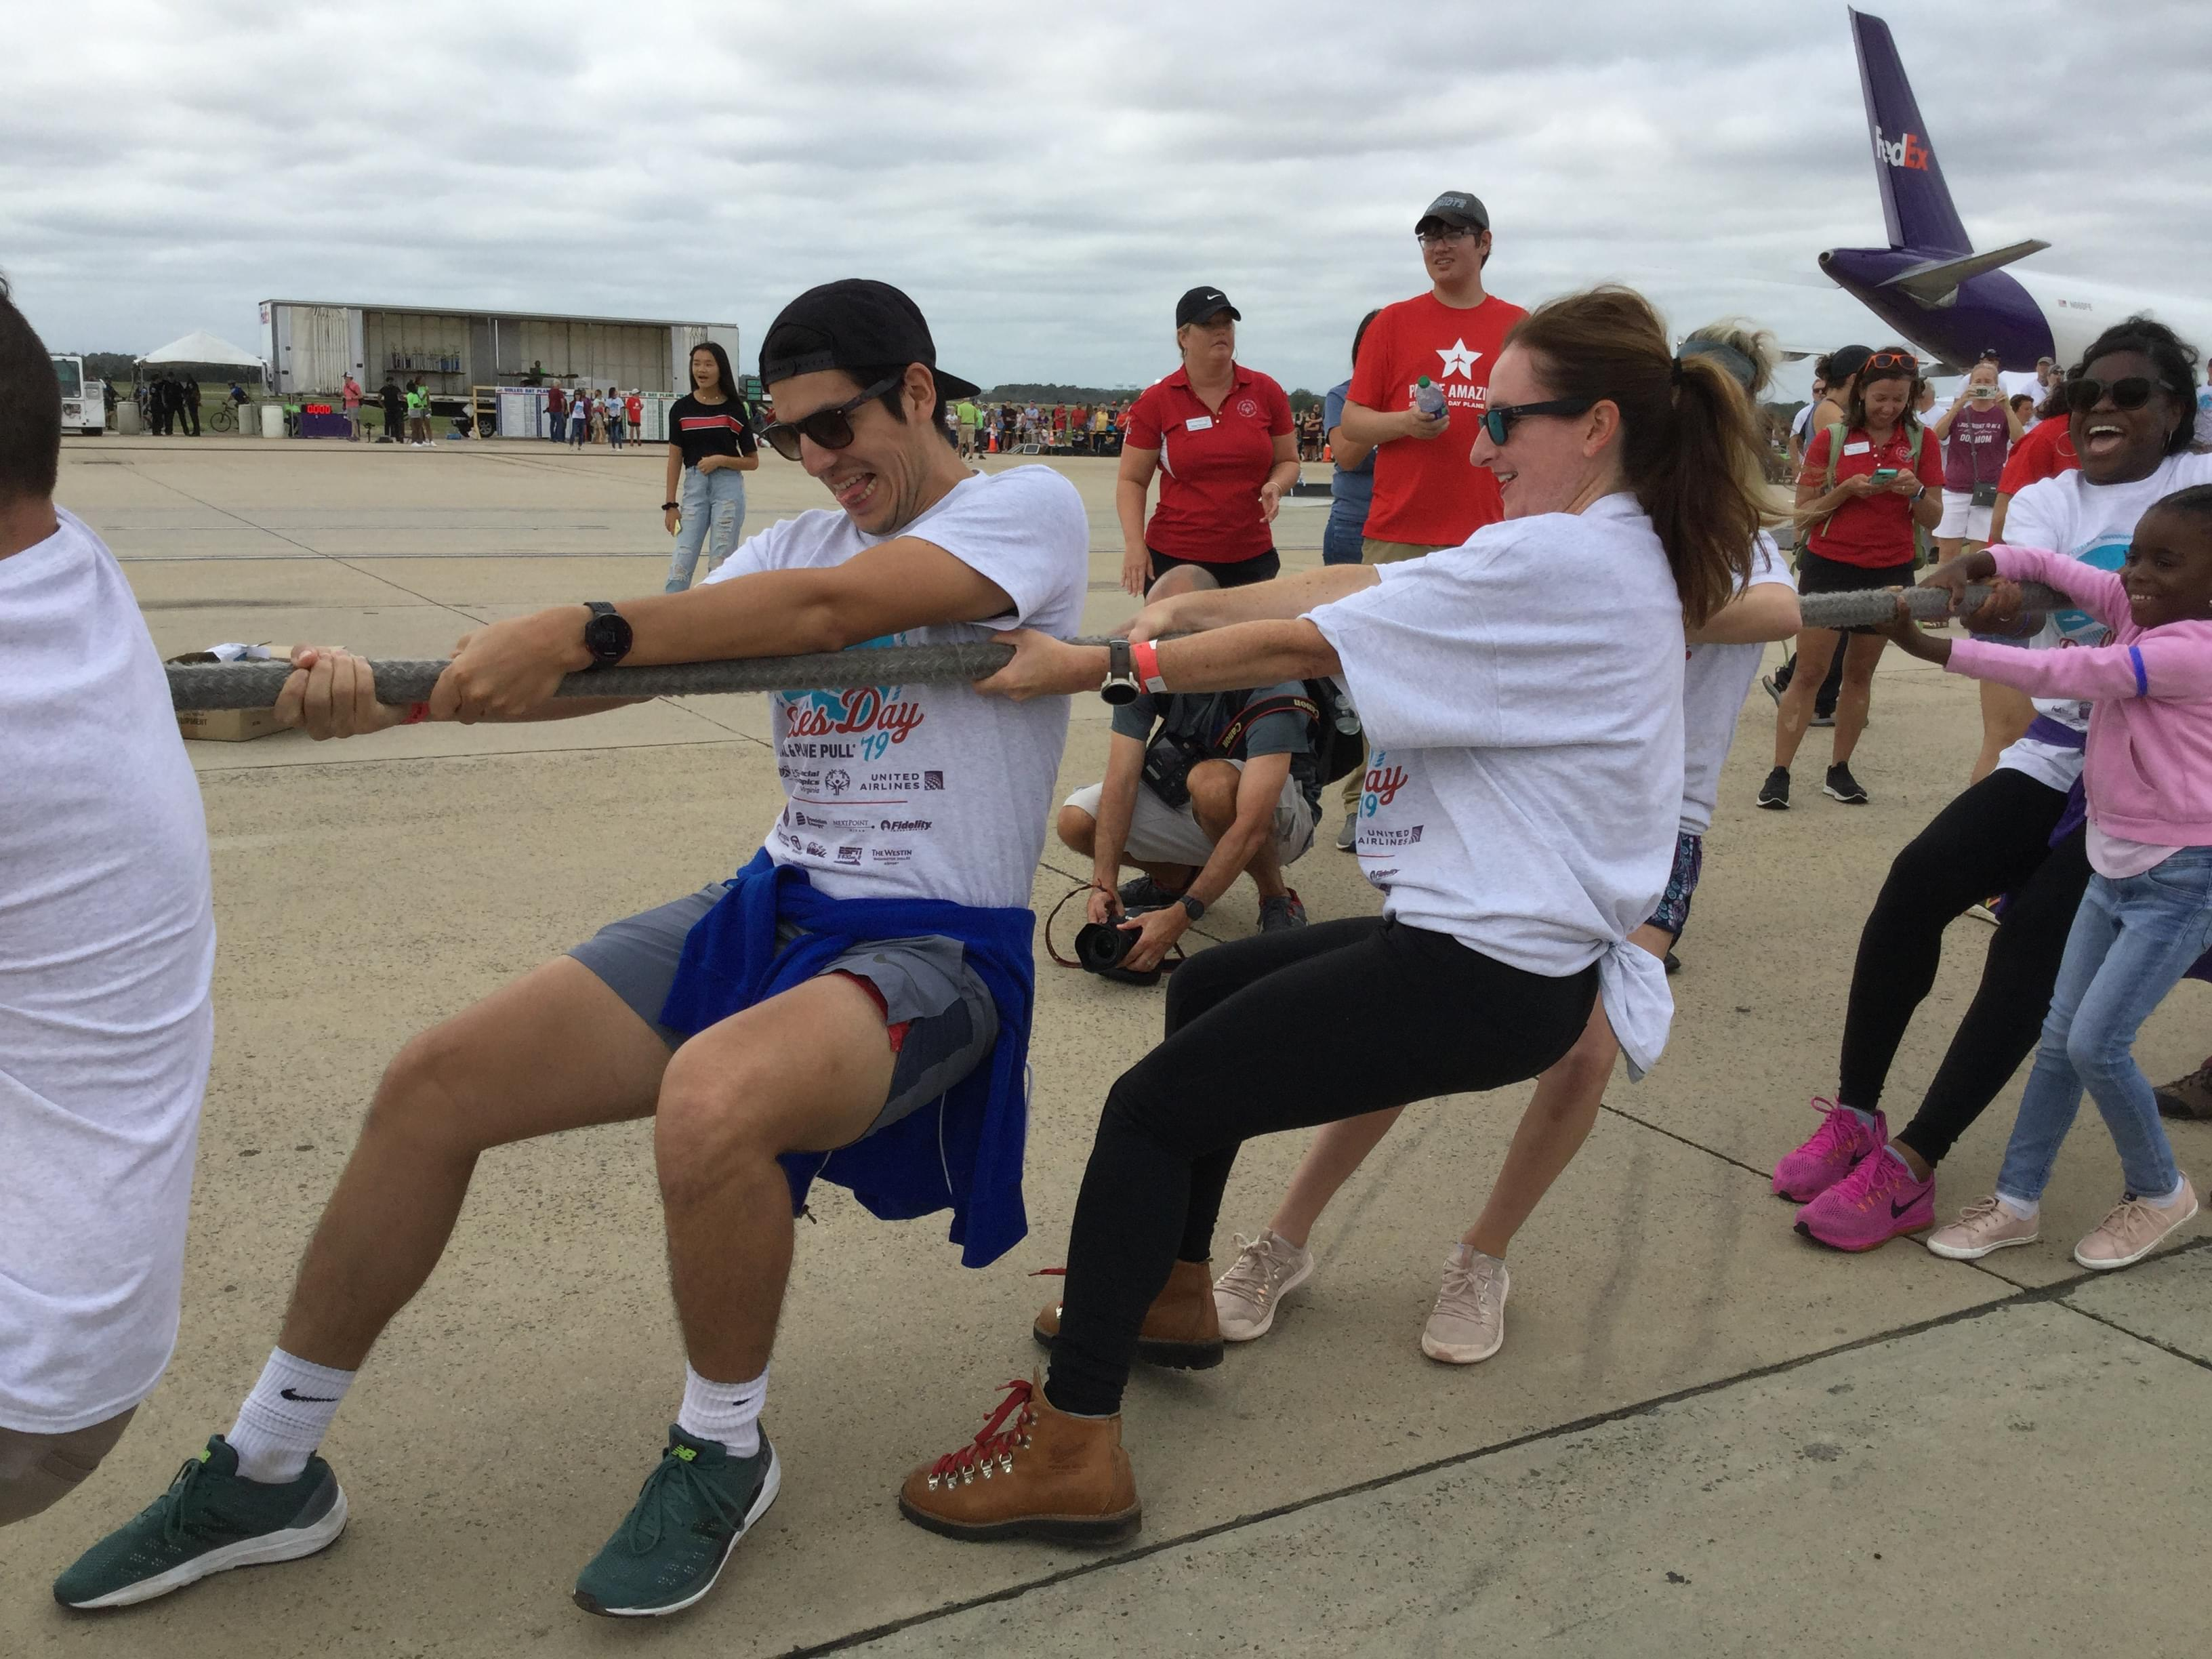 Dulles Day Festival & Plane Pull w/ Special Olympics VA – 9/14/19